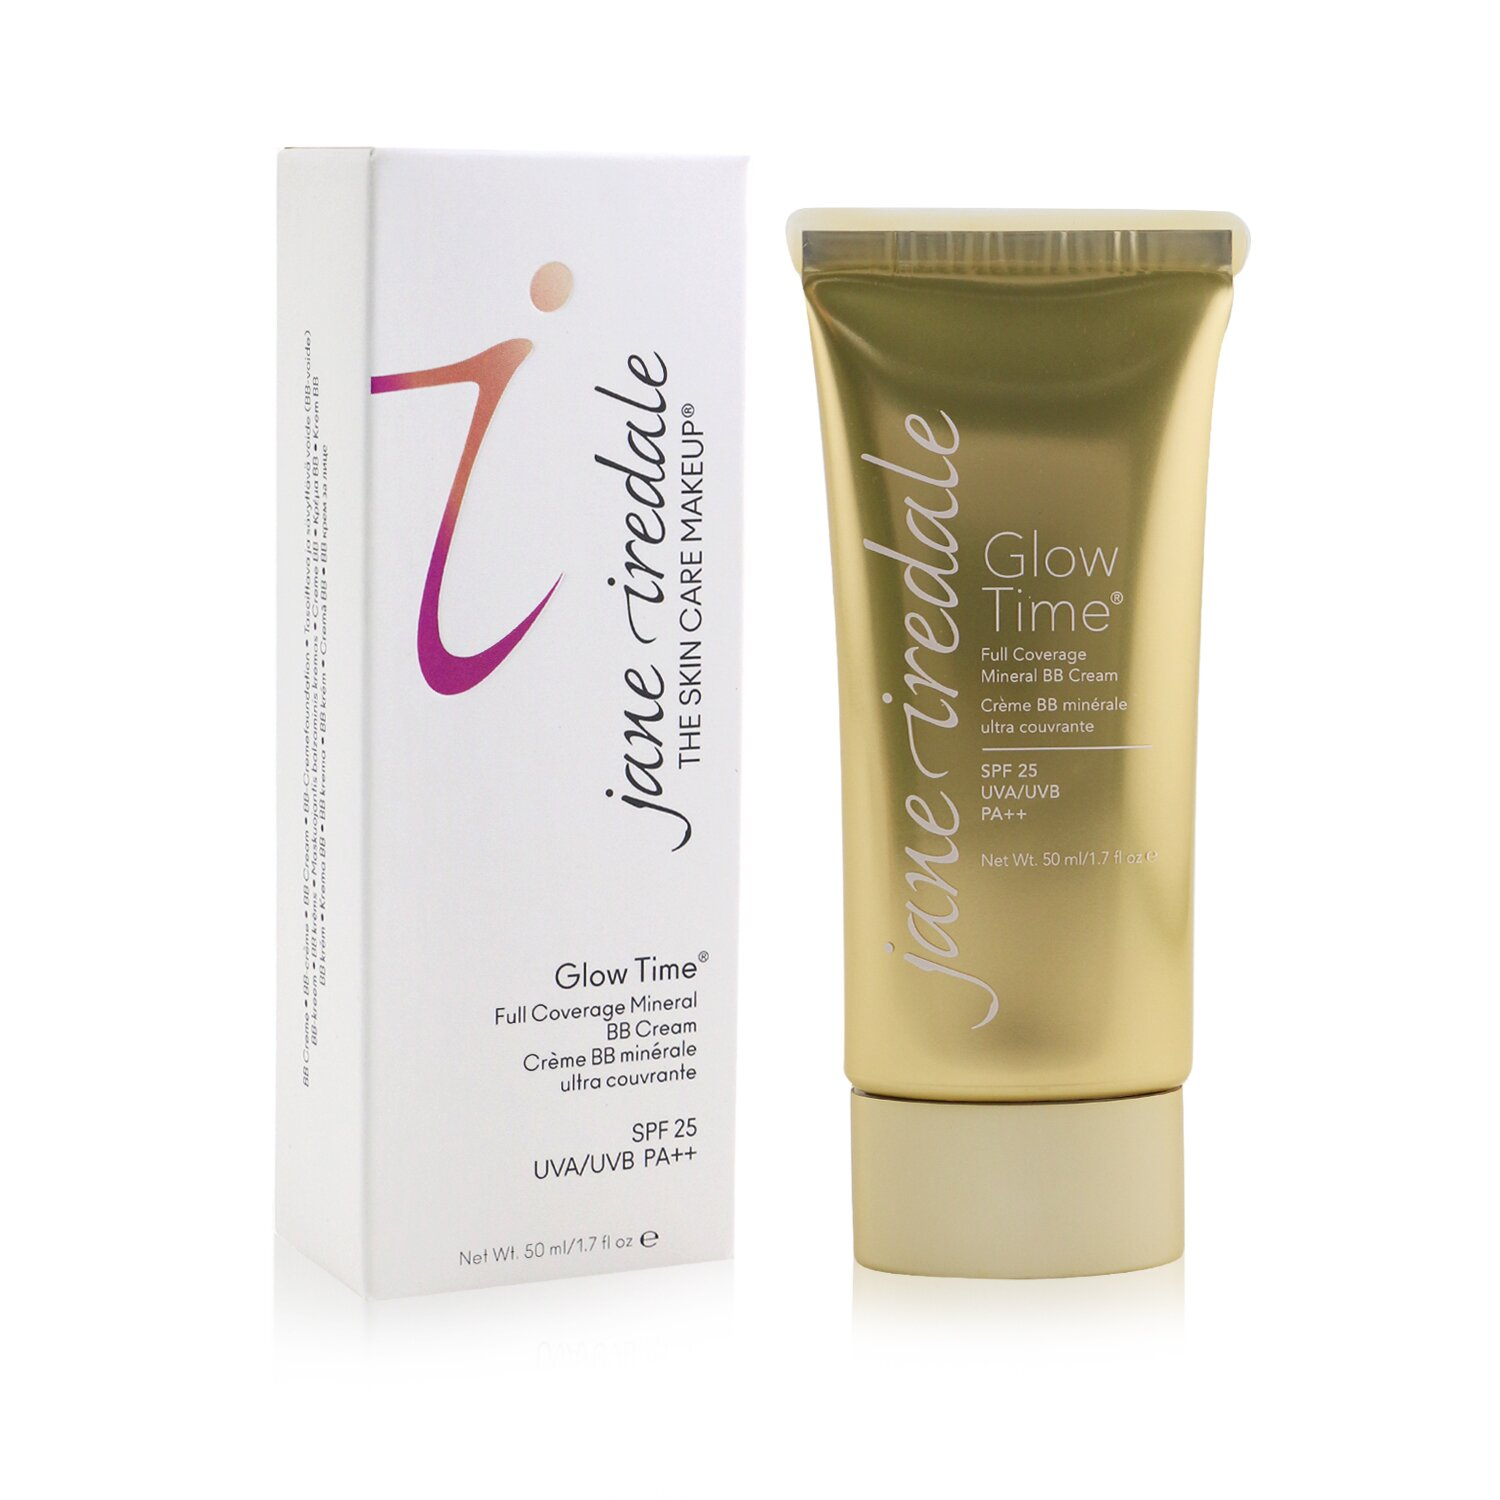 Jane-Iredale-Glow-Time-Full-Coverage-Mineral-BB-Cream-SPF-25